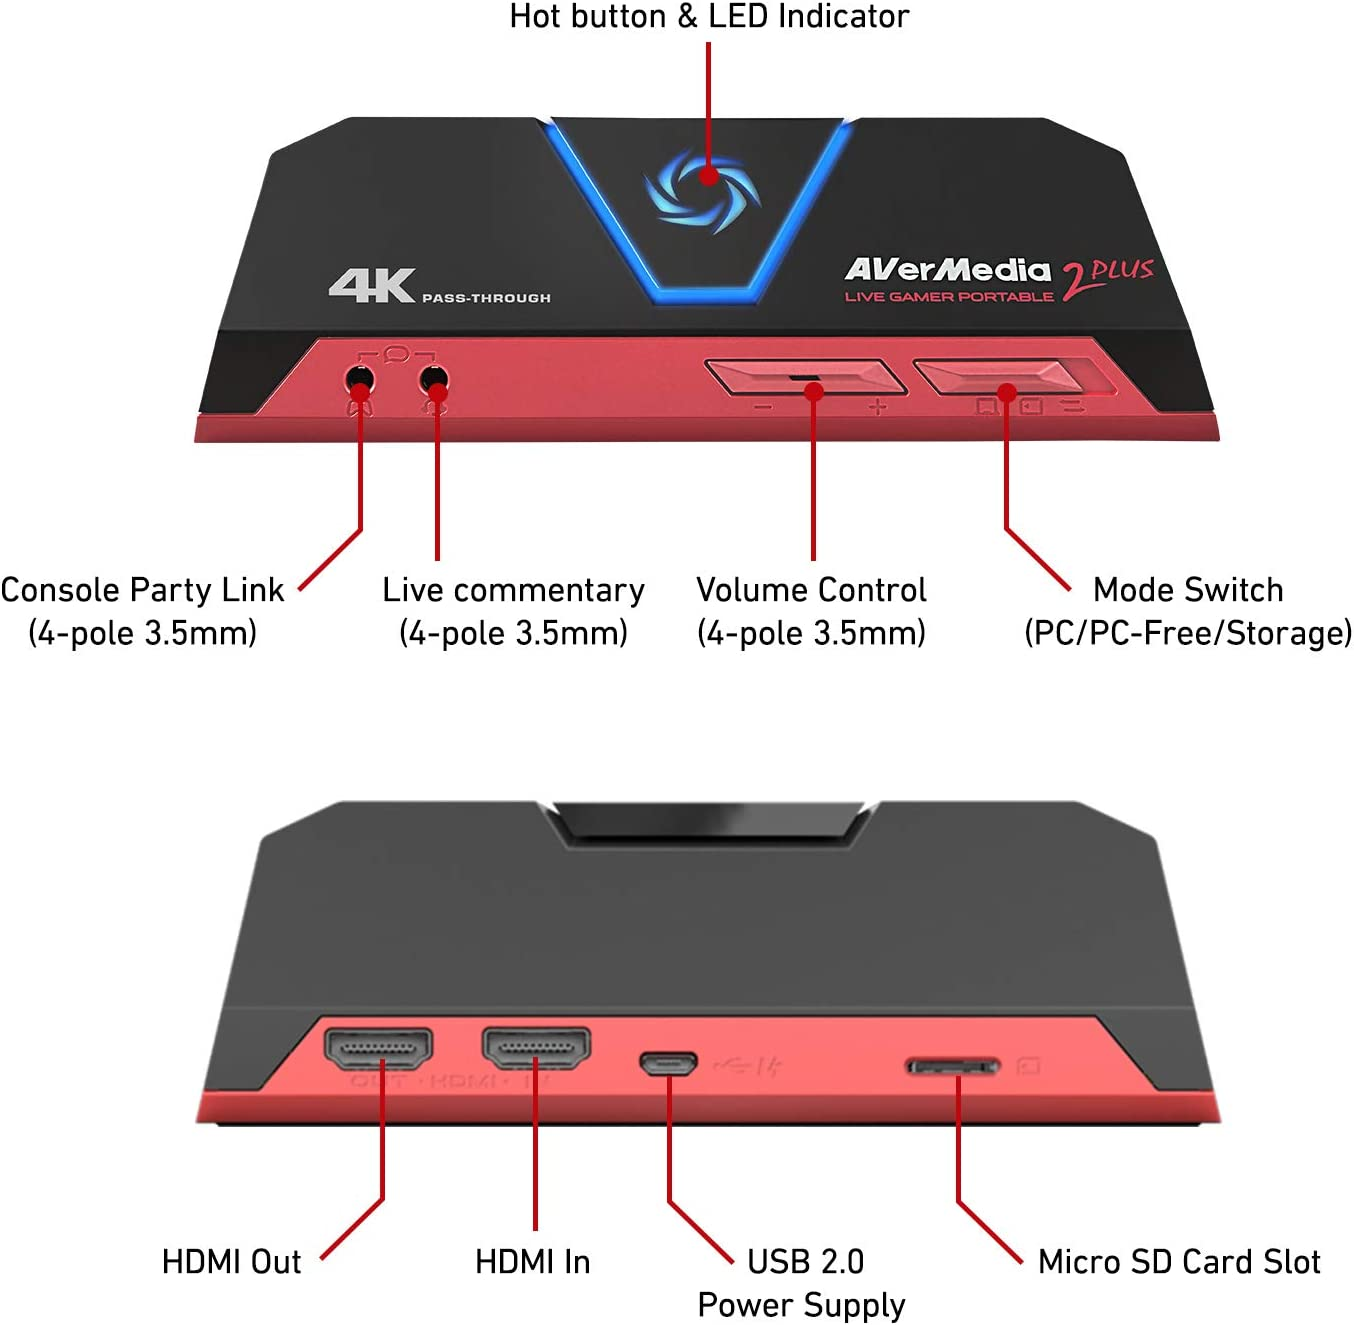 AVerMedia Live Gamer Portable 2 Plus, 4K Pass-Through, Capturadora ...